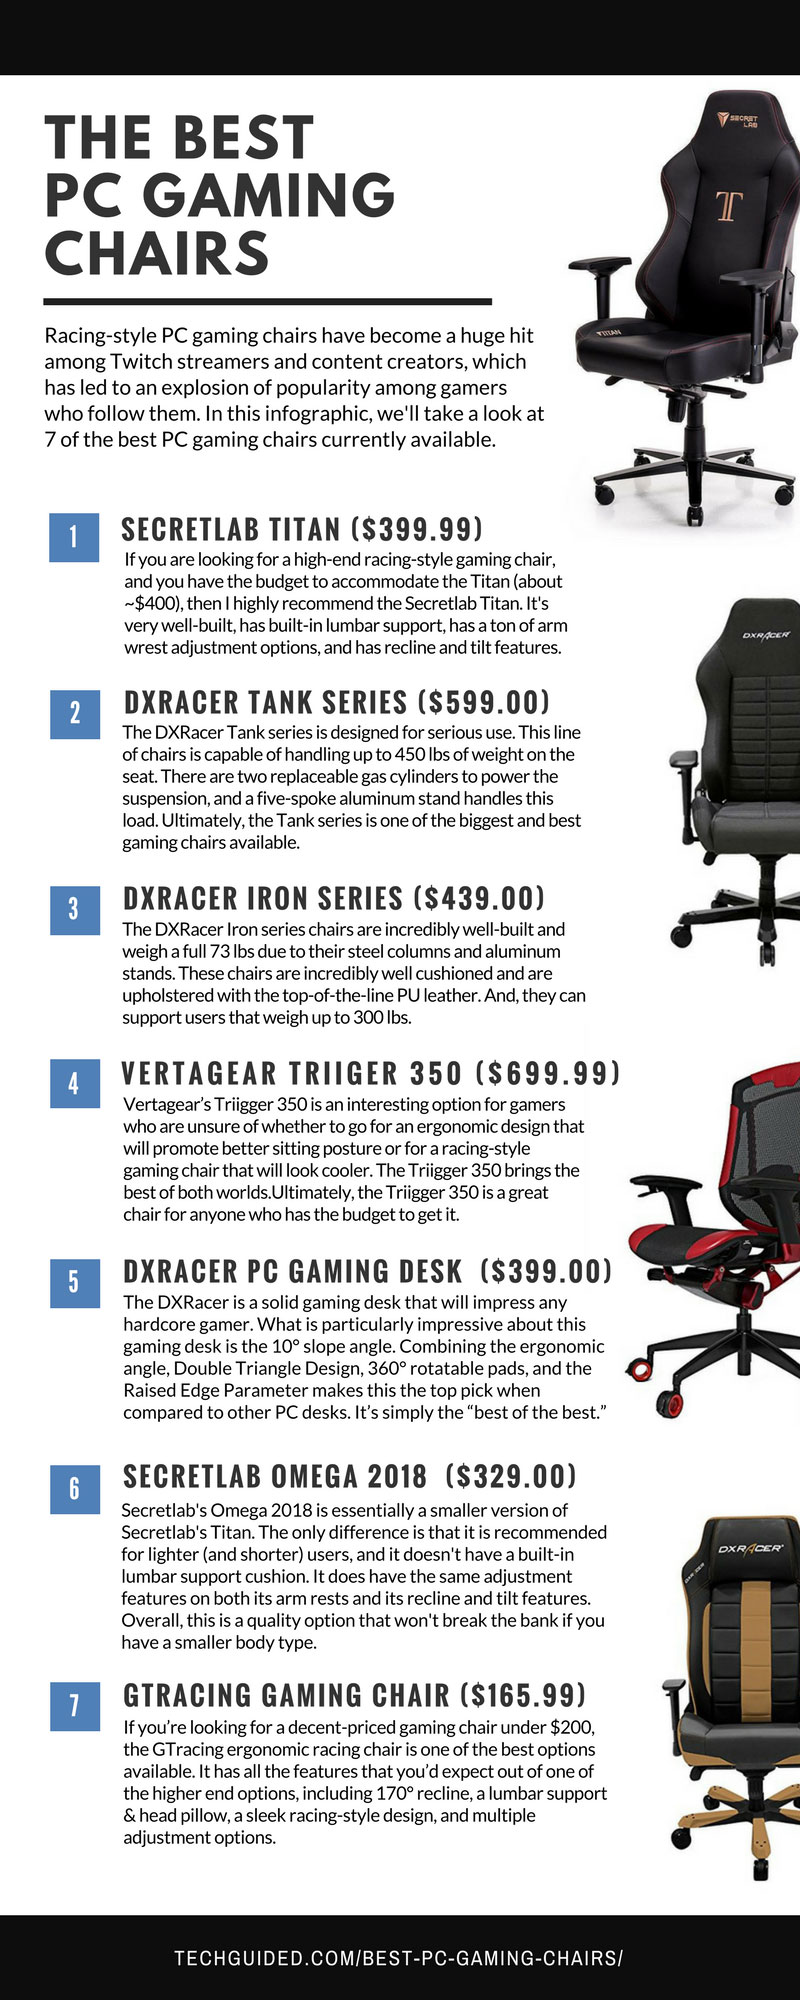 The Best PC Gaming Chairs